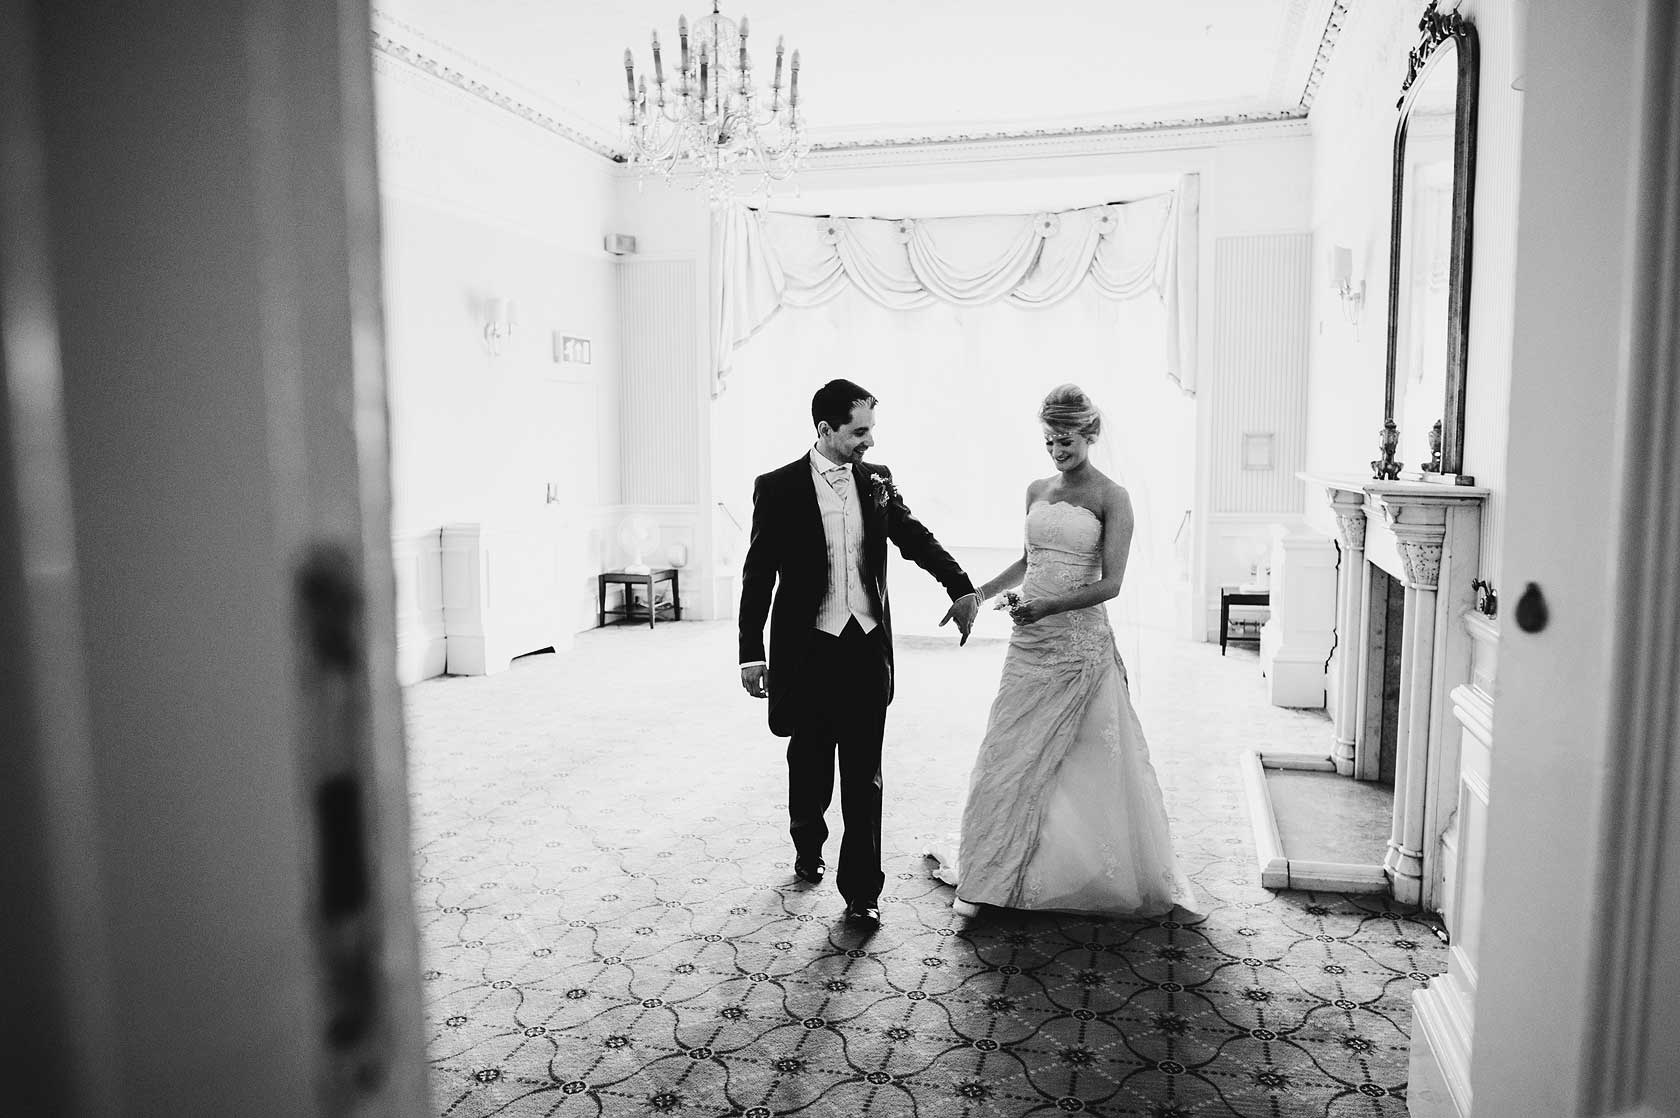 Reportage Wedding Photography in Derbyshire